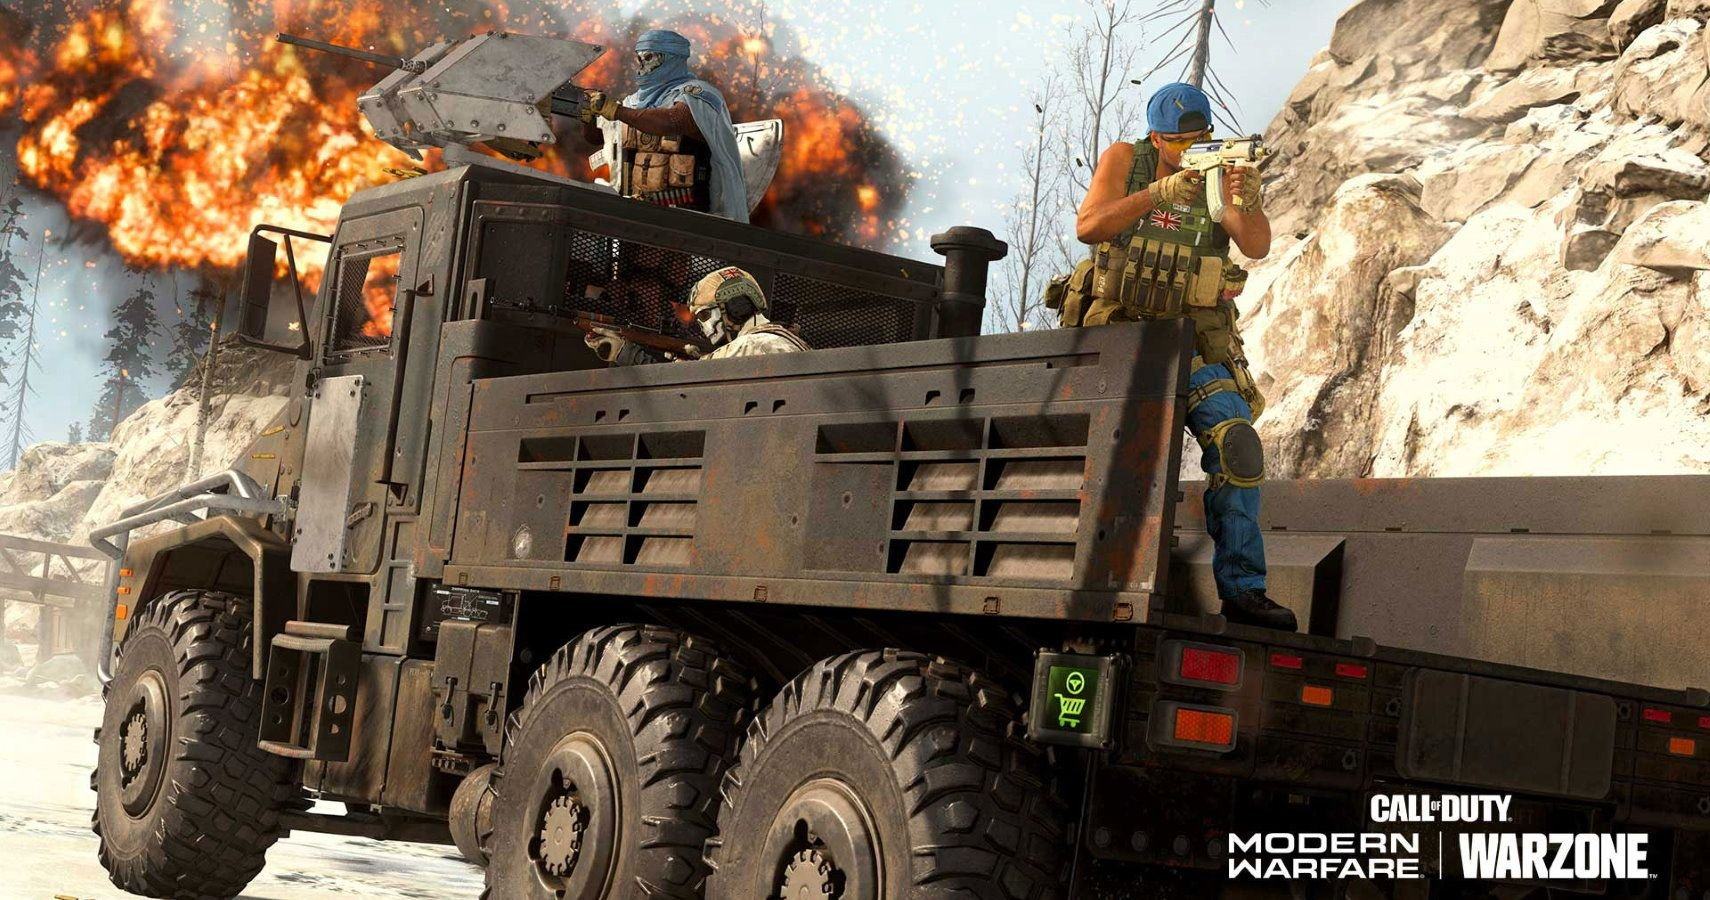 Warzone's Armored Trucks Removed For Yet Another Invisibility Glitch